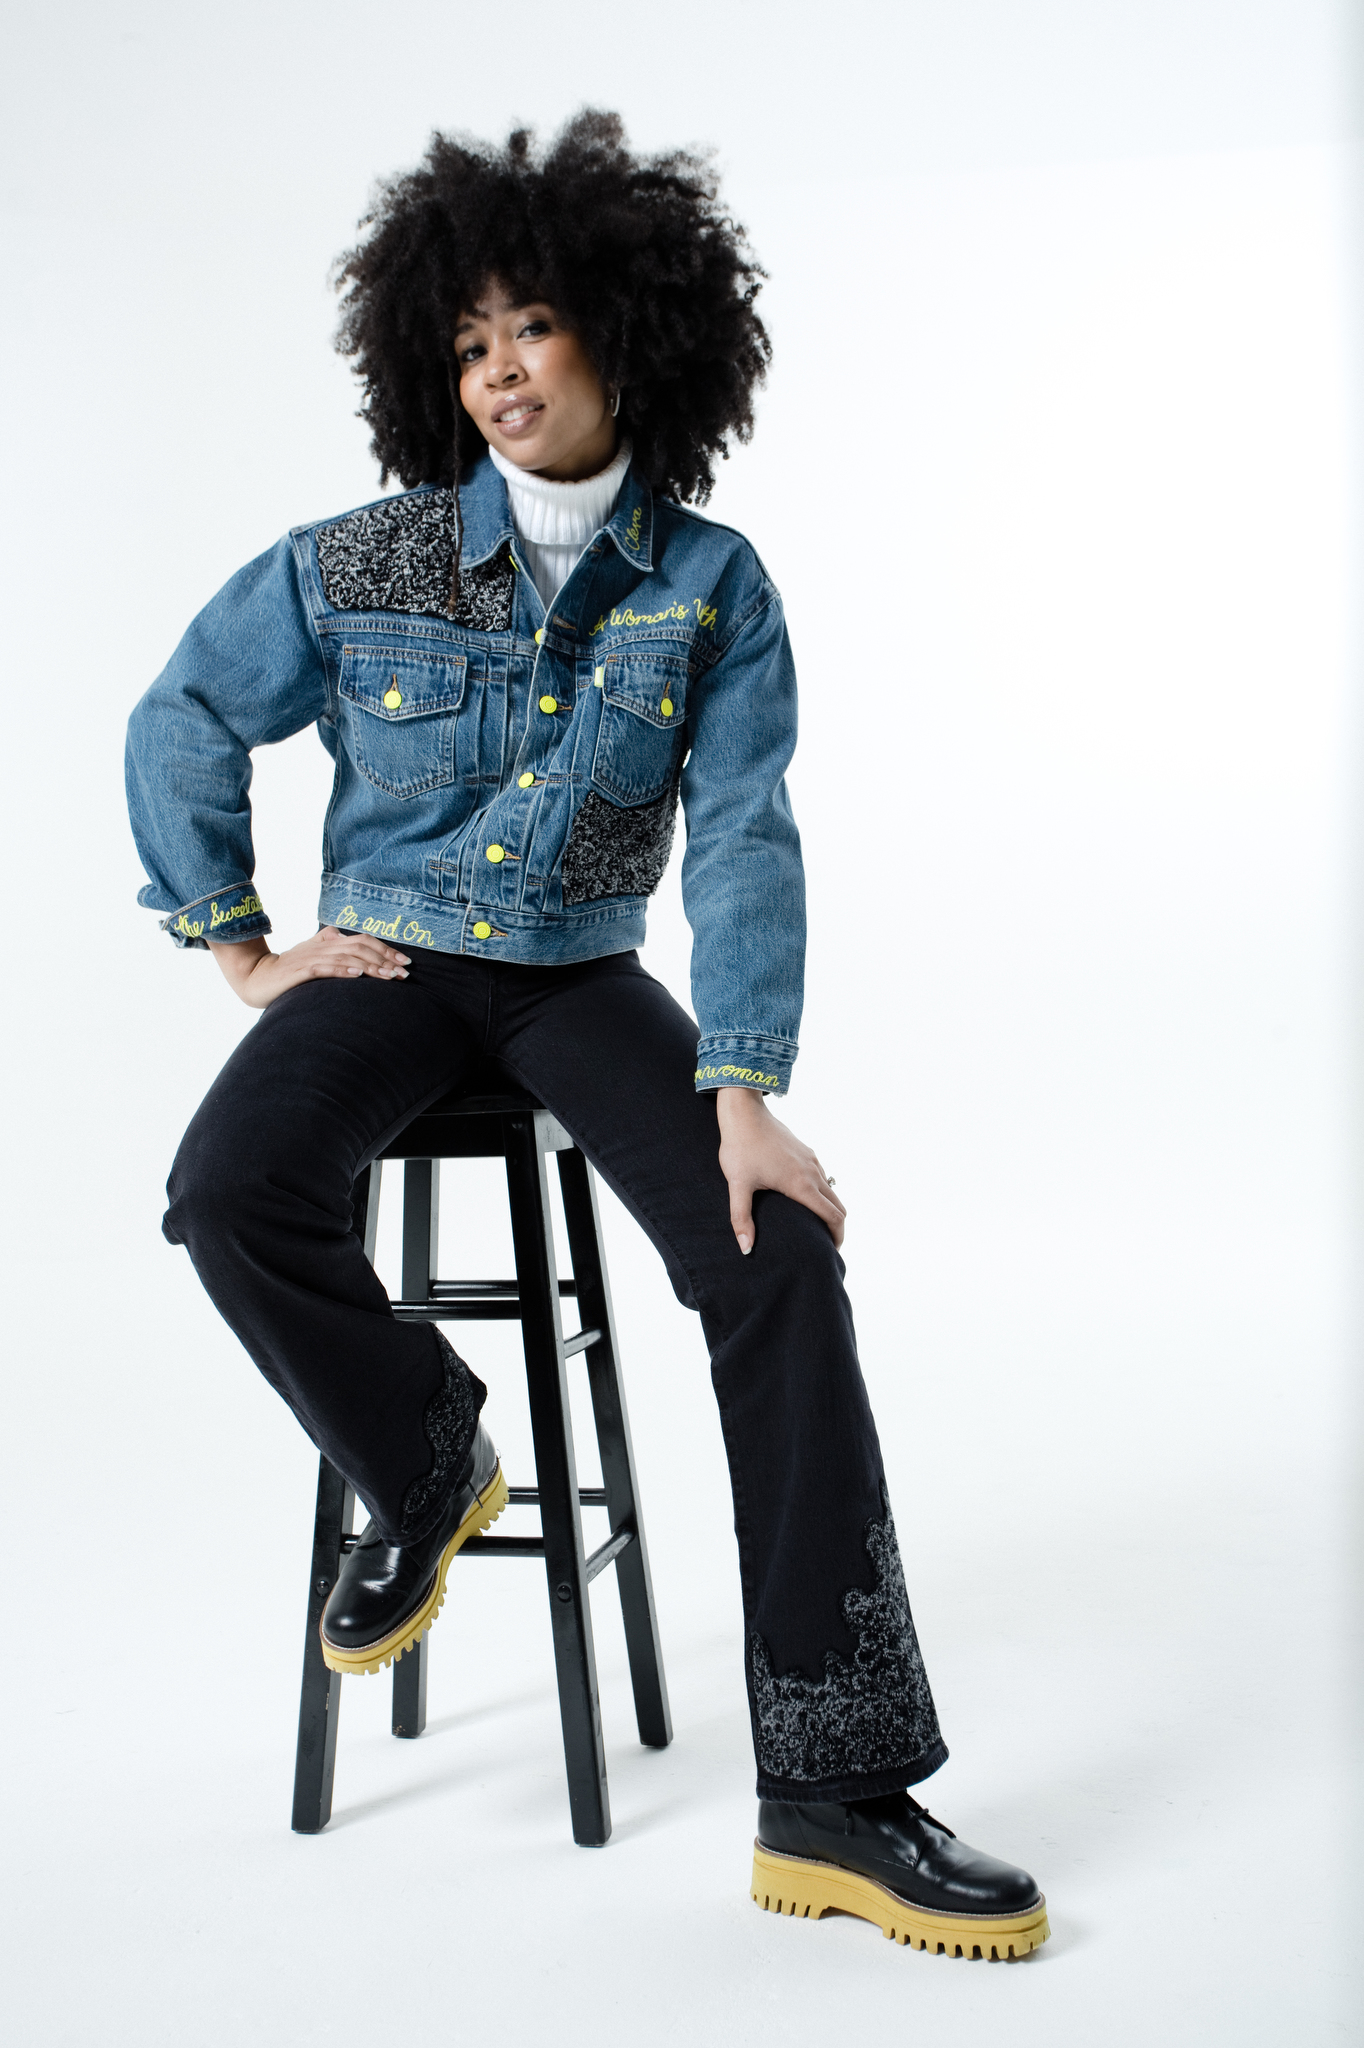 Marissa Wilson's clothing from her collaboration with Levi's